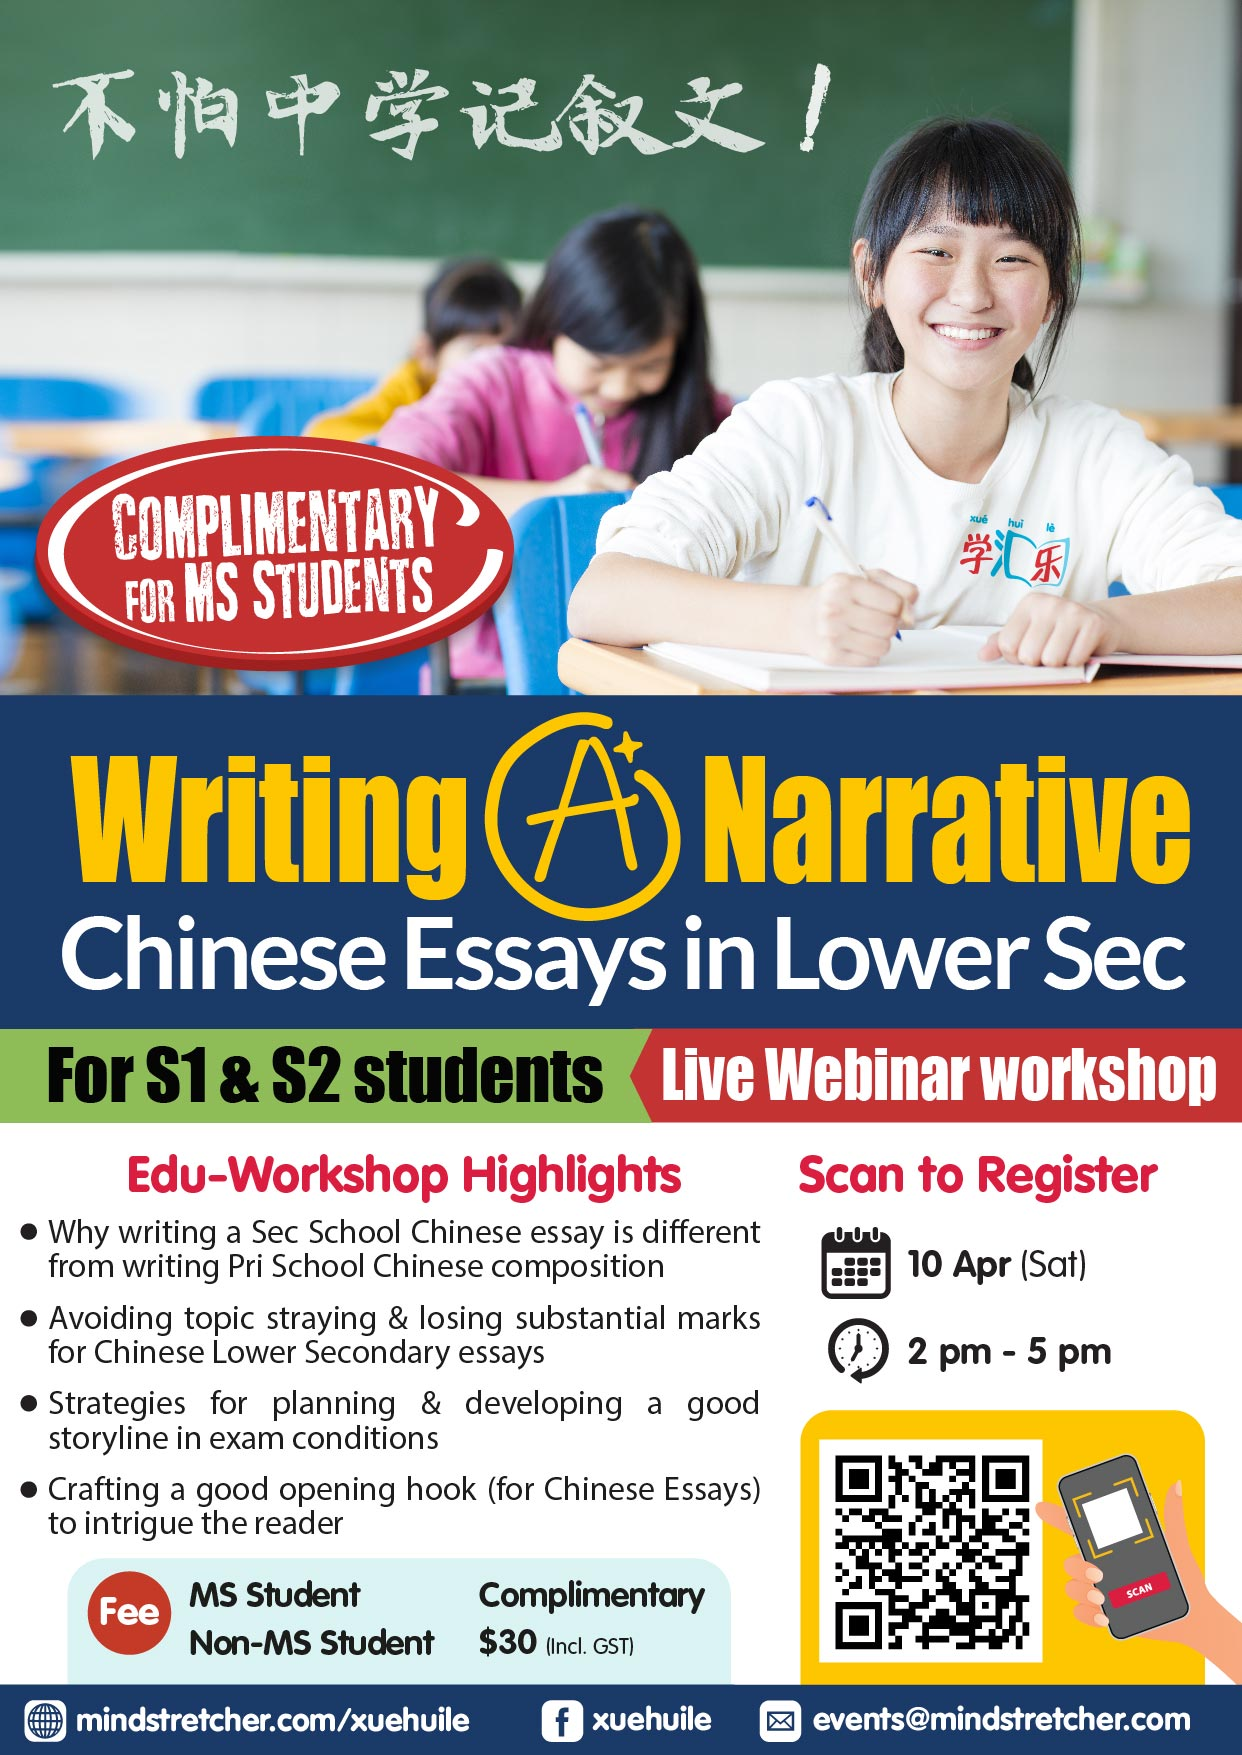 Writing A* Narrative Chinese Essays in Lower Sec